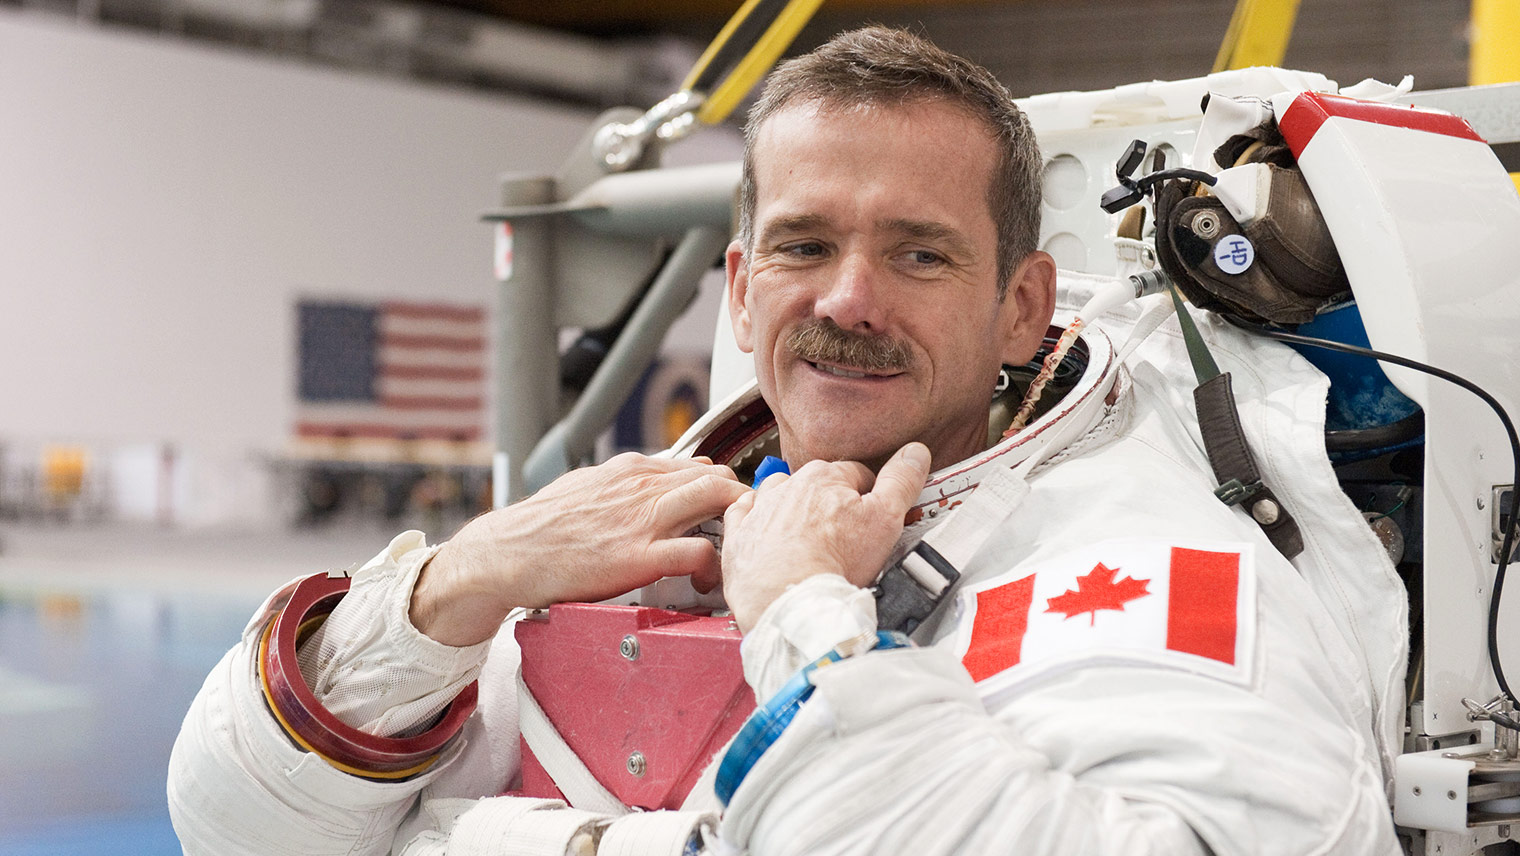 Chris hadfield canadian astronaut